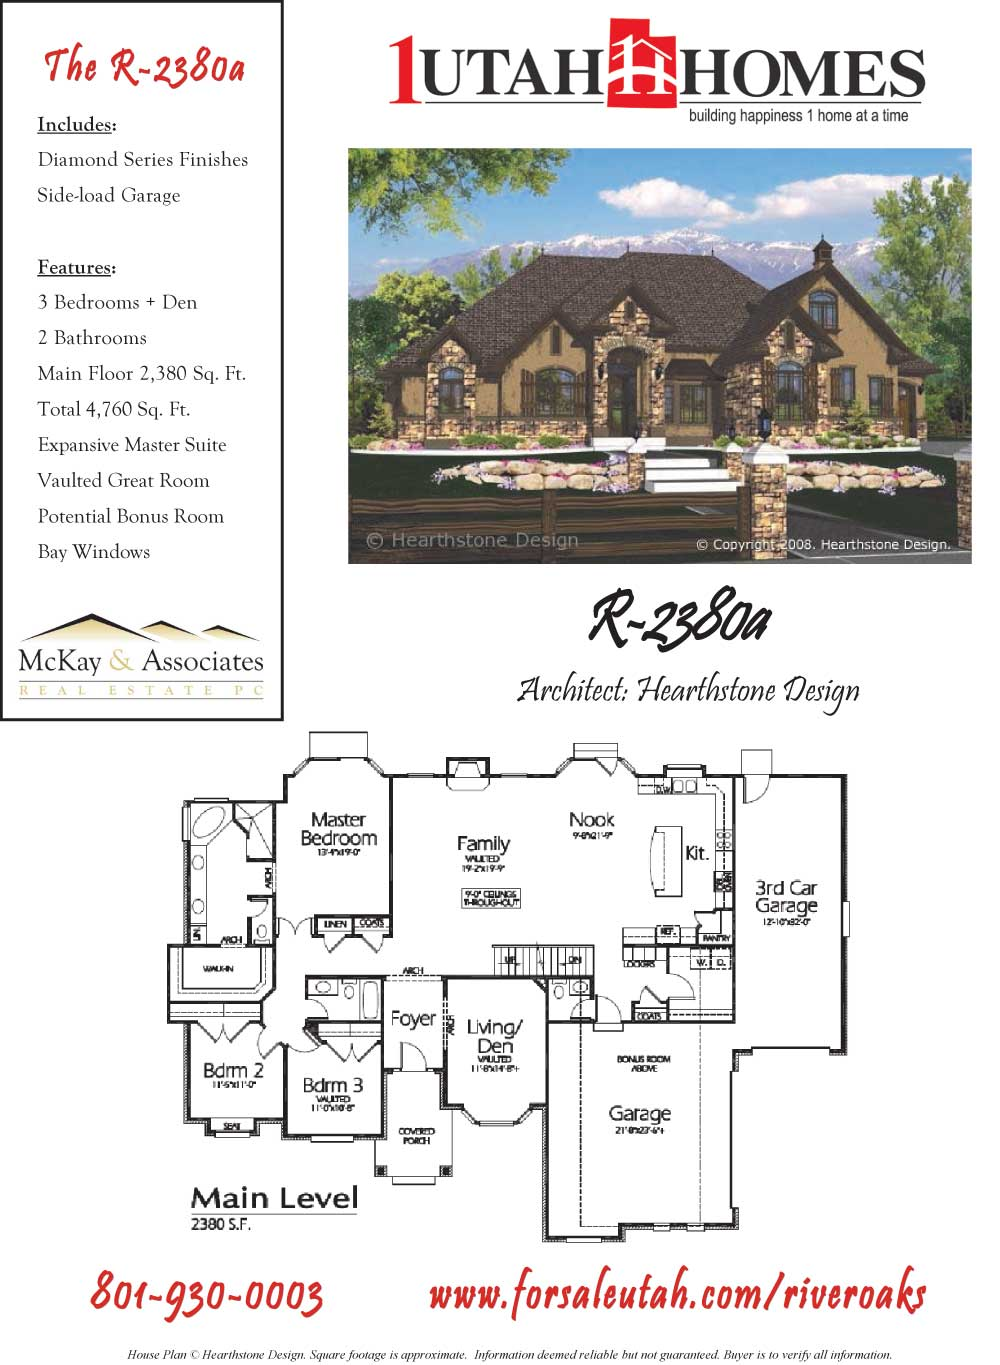 1 utah homes river oaks estate home plans for Utah home design plans